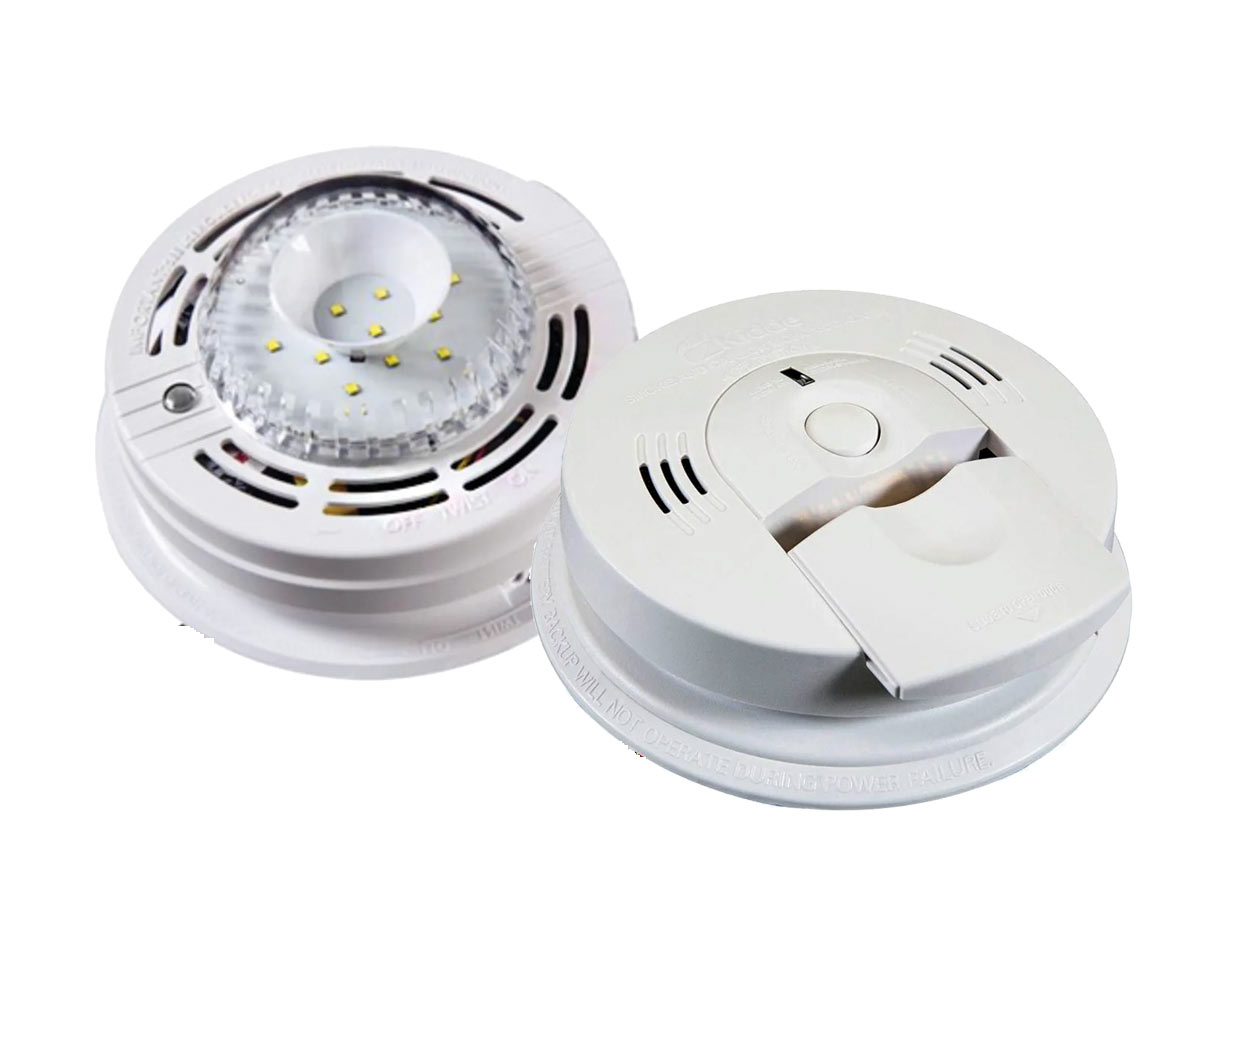 Kidde Combo Carbon Monoxide and Smoke Alarm with Strobe Light Price: $159.95